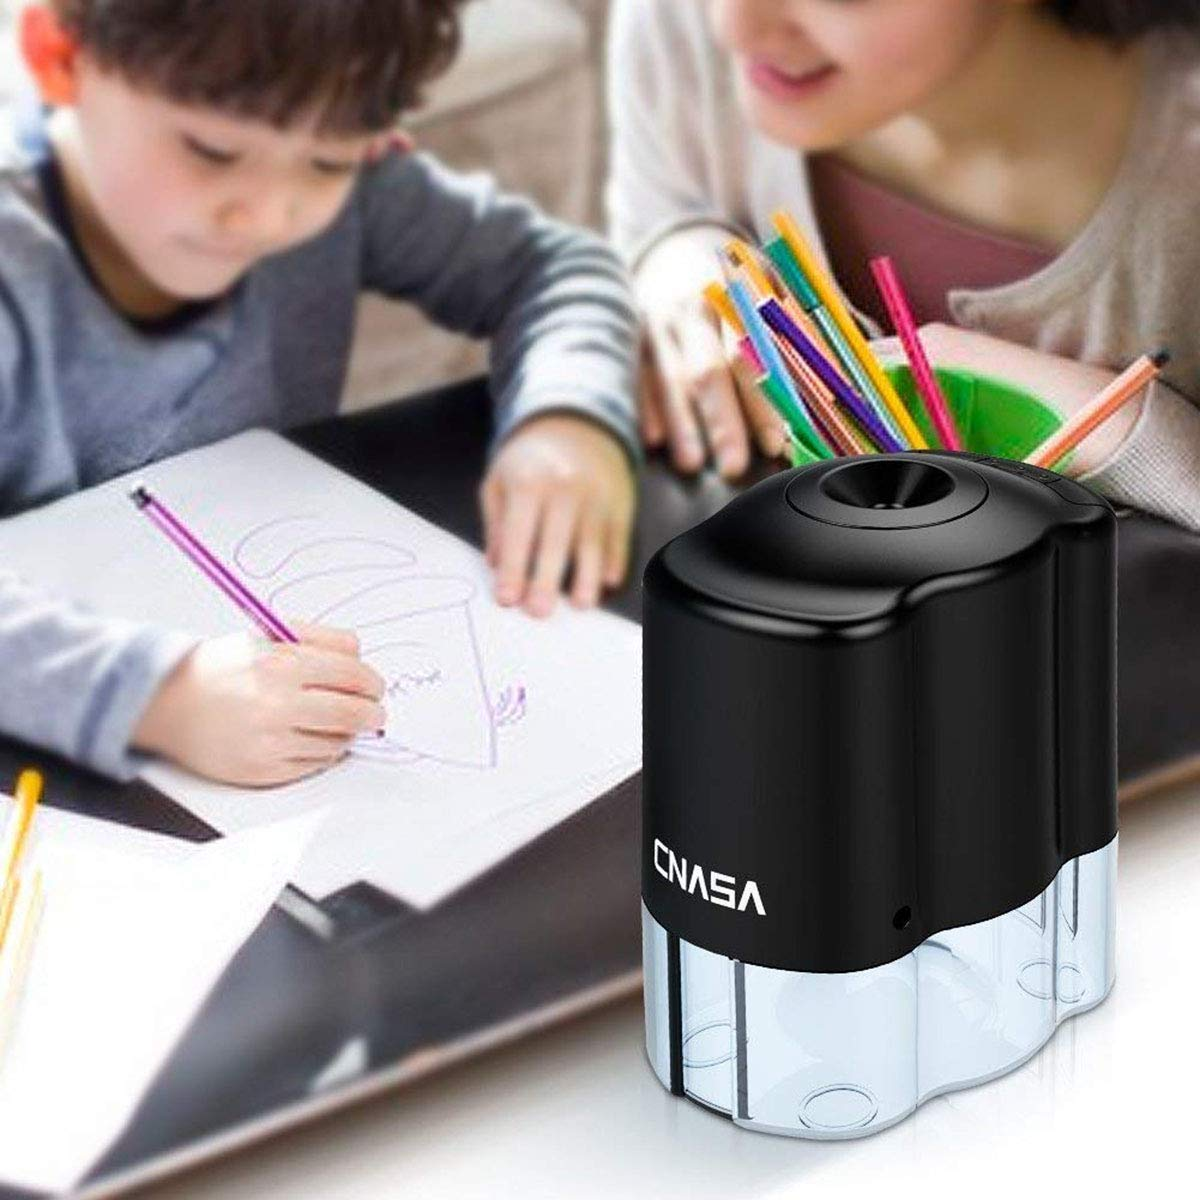 Automatic Electrical Sharpener for NO.2 Pencils and Colored Pencils,Portable Electric Sharpener by CNASA (Image #4)